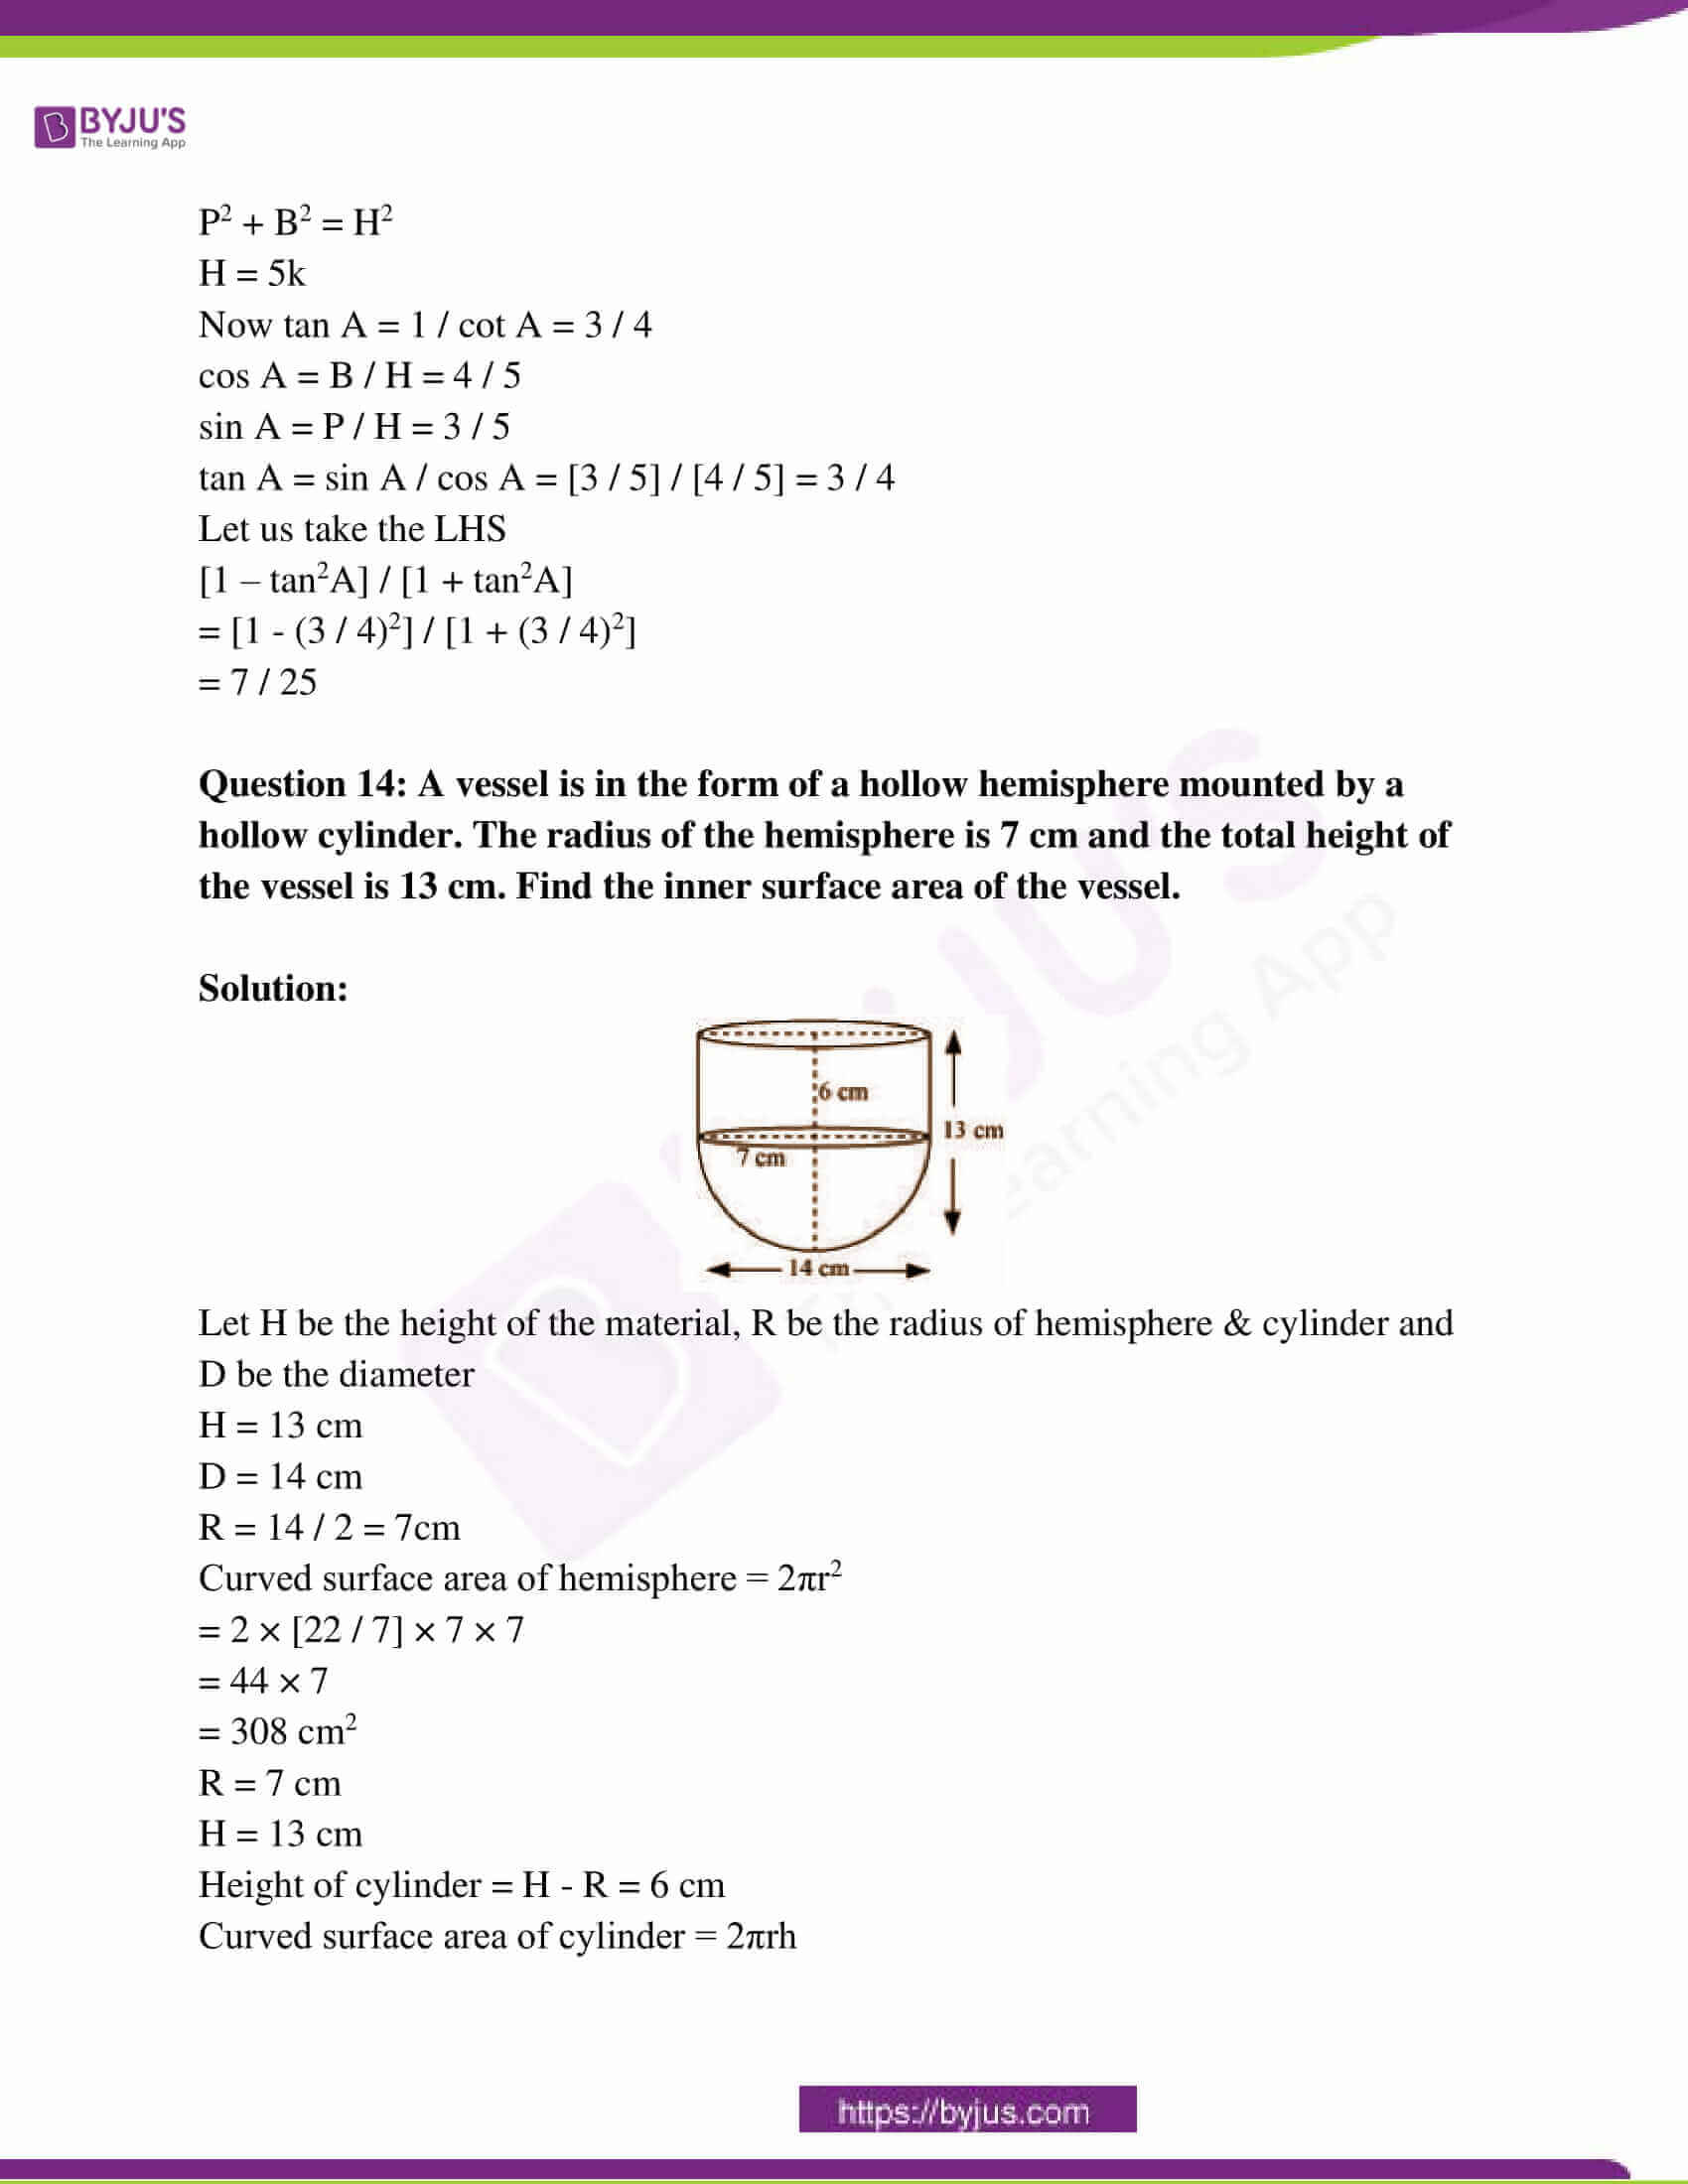 rajasthan board class 10 examination question paper sol march 2015 06